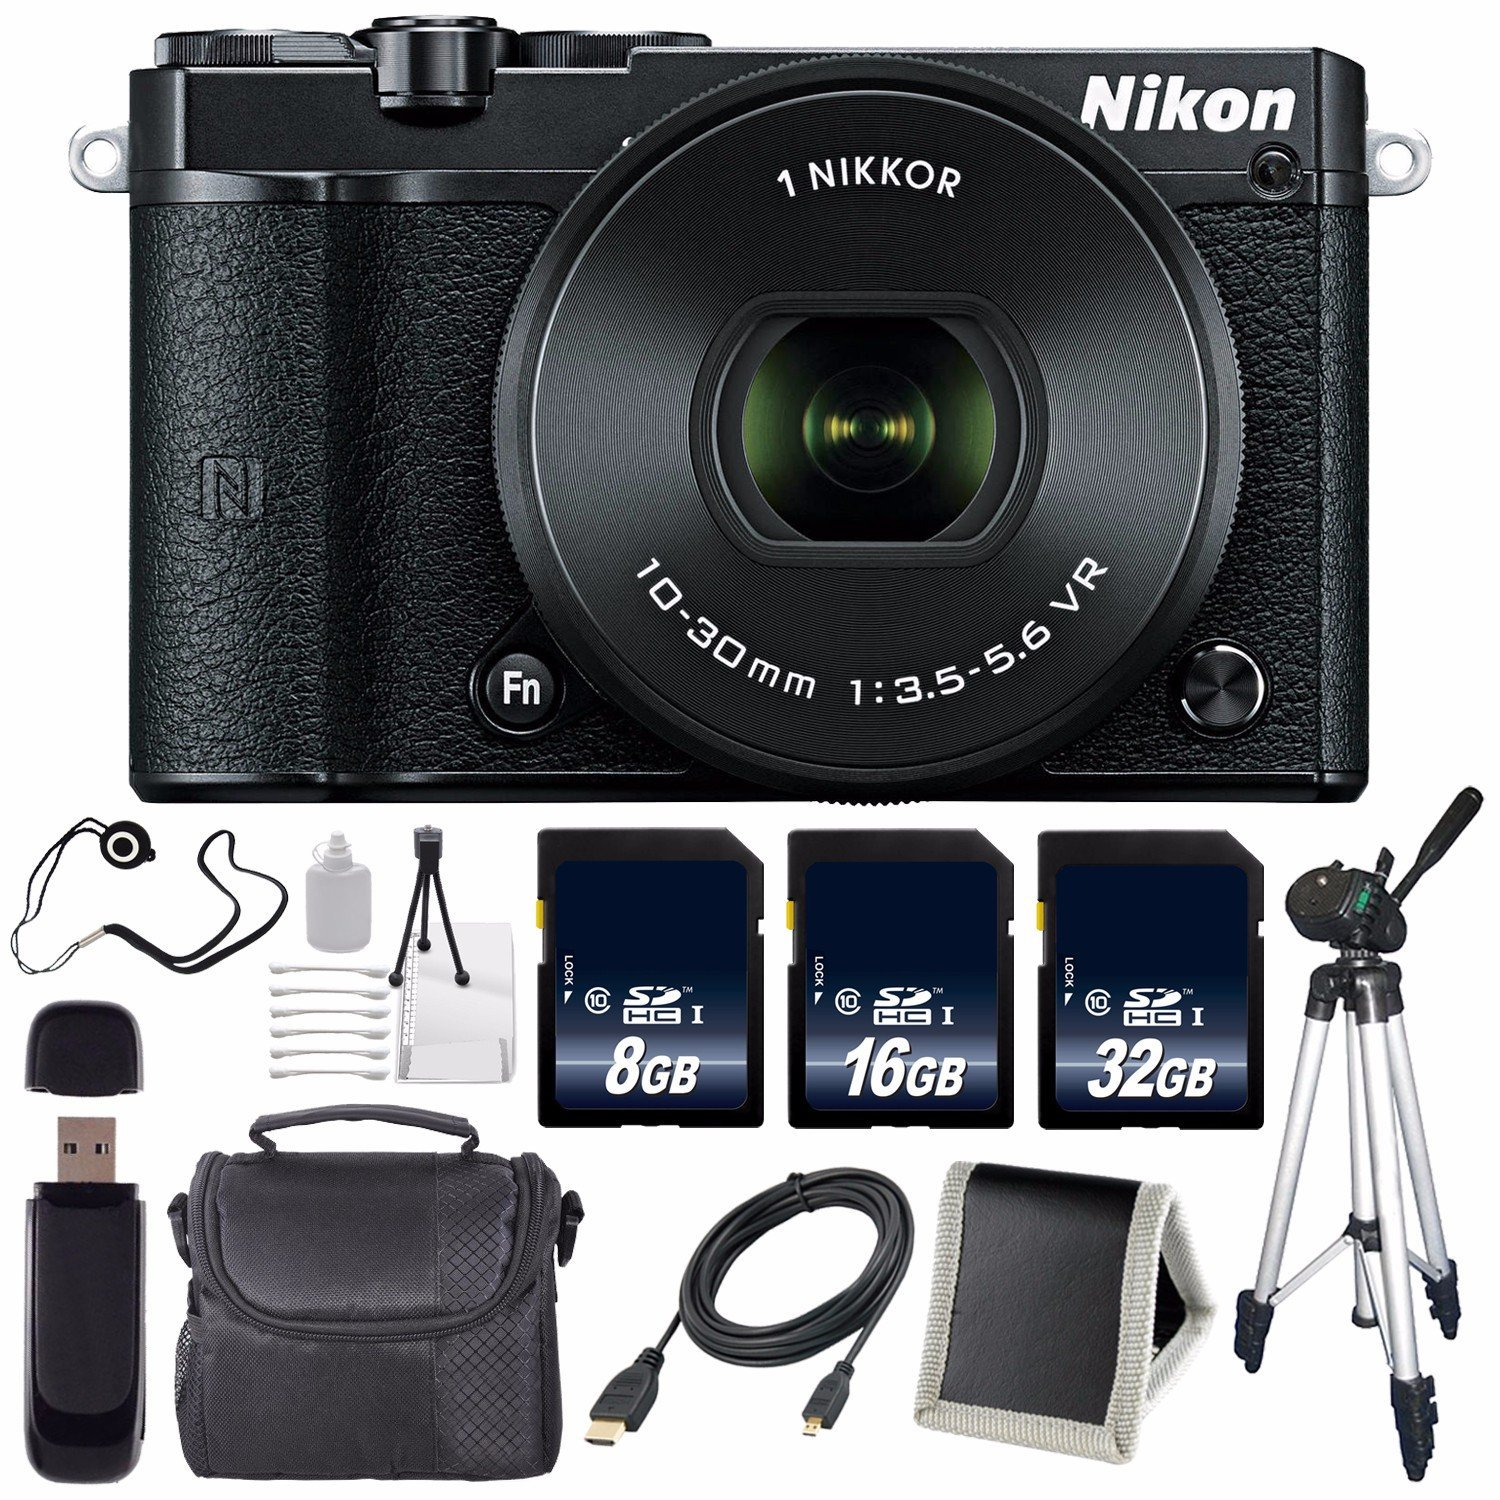 Nikon 1 J5 Mirrorless Digital Camera with 10-30mm Lens (Black) (International Model) No Warranty + Tripod + Carrying Case + Micro HDMI Cable + SD Card USB Reader + Memory Card Wallet Bundle